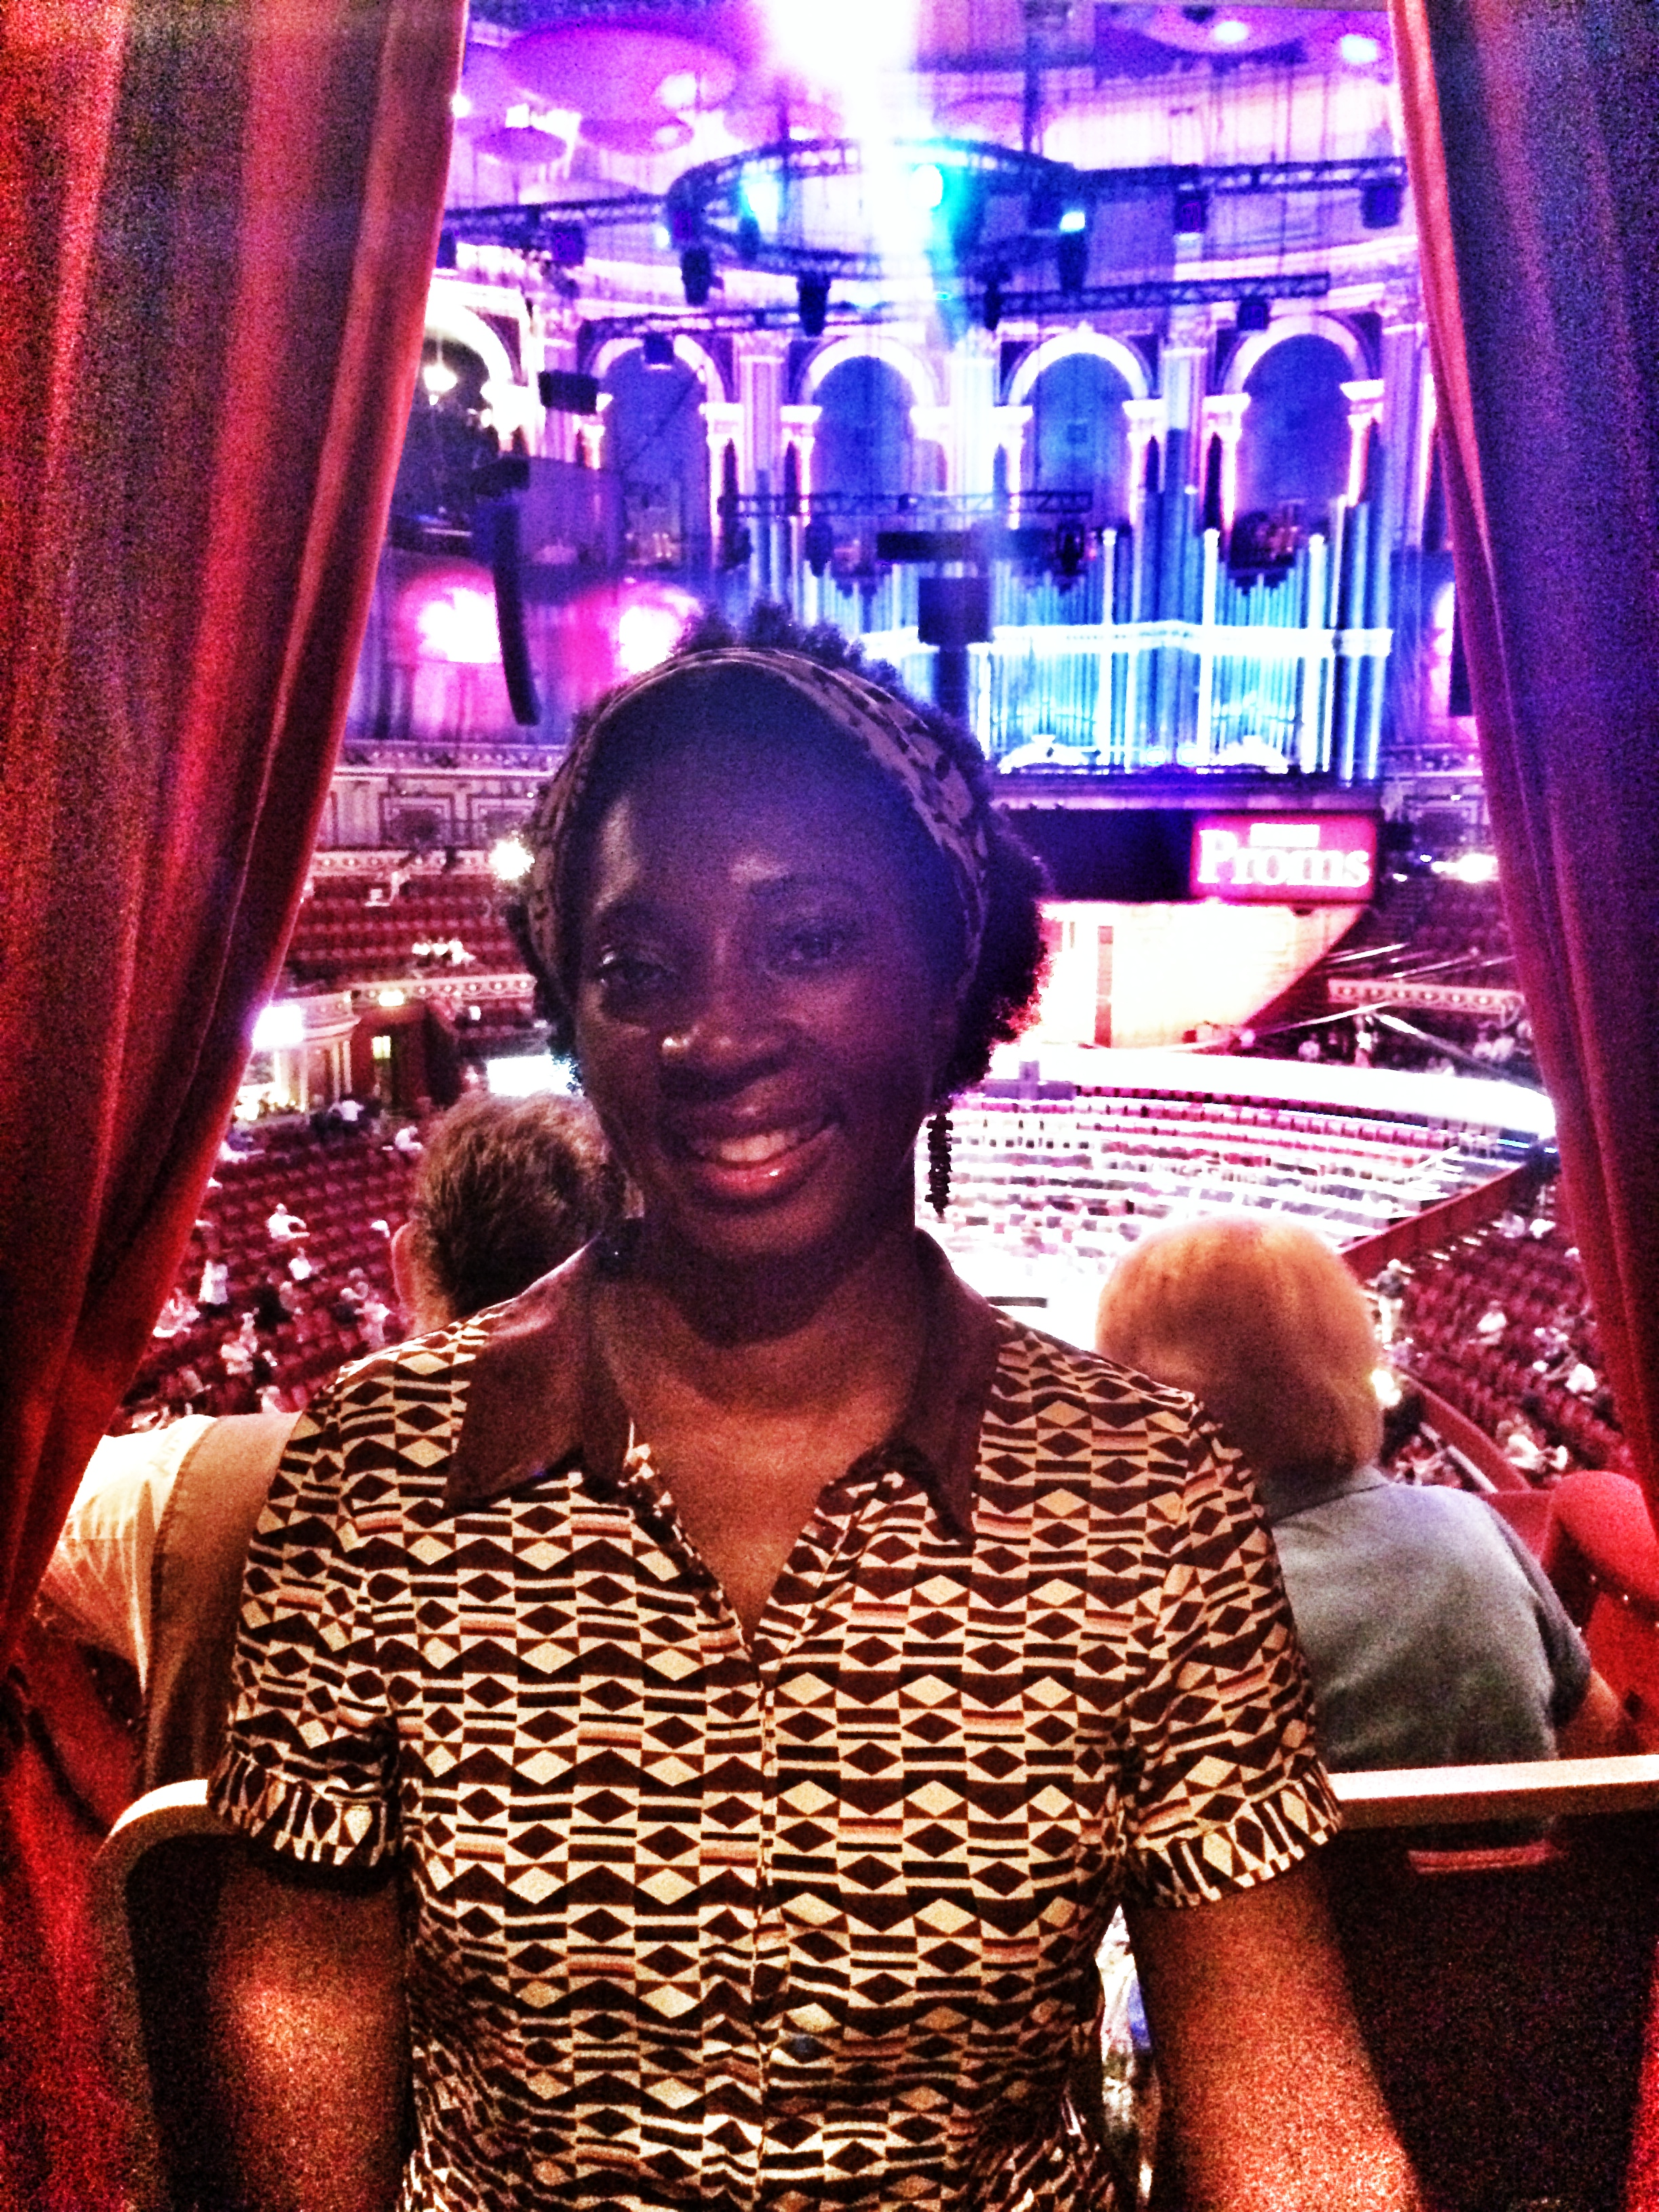 Wendy Shearer in a box at The Royal Albert Hall